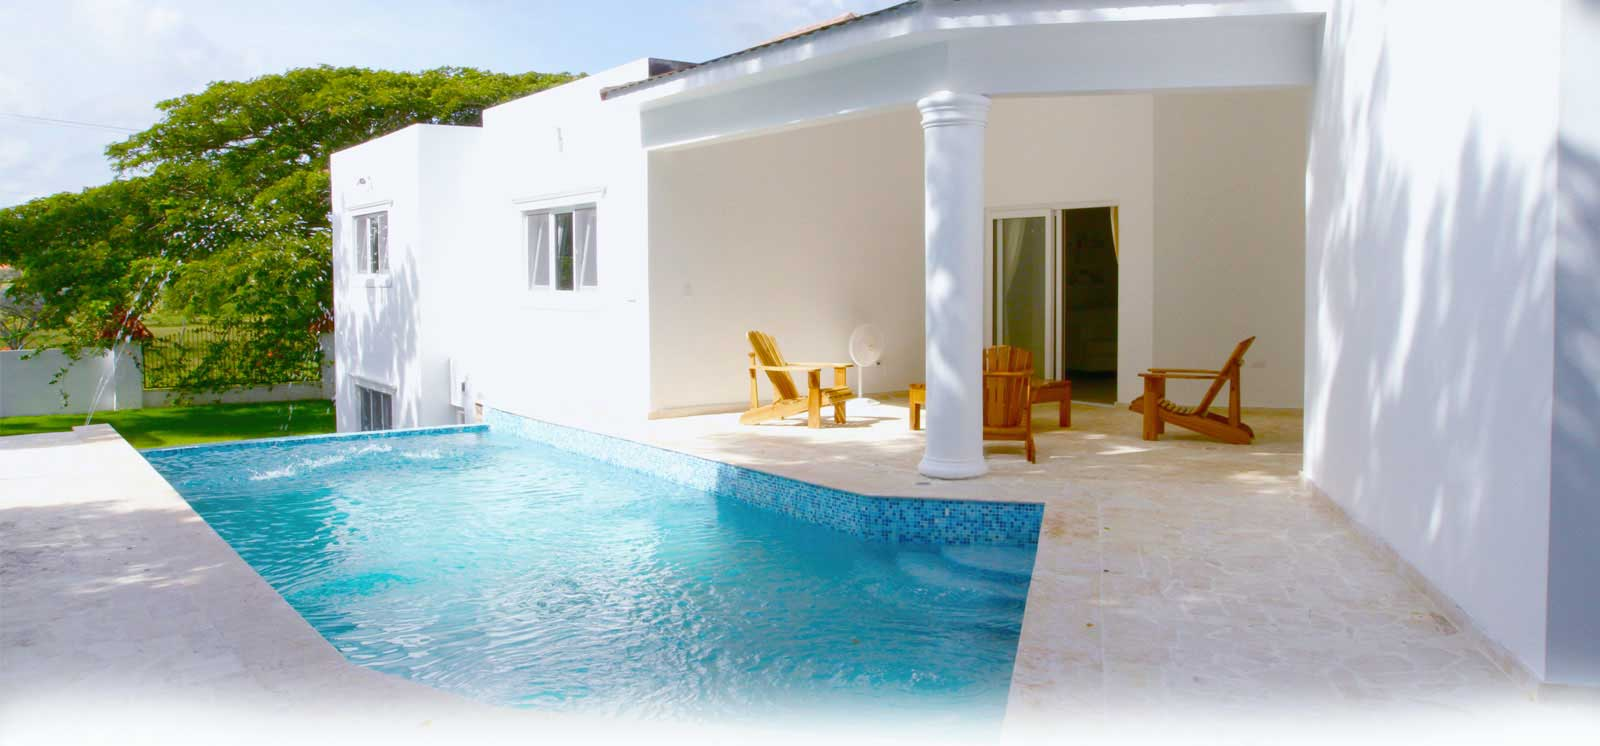 Dominican Real Estate Listings